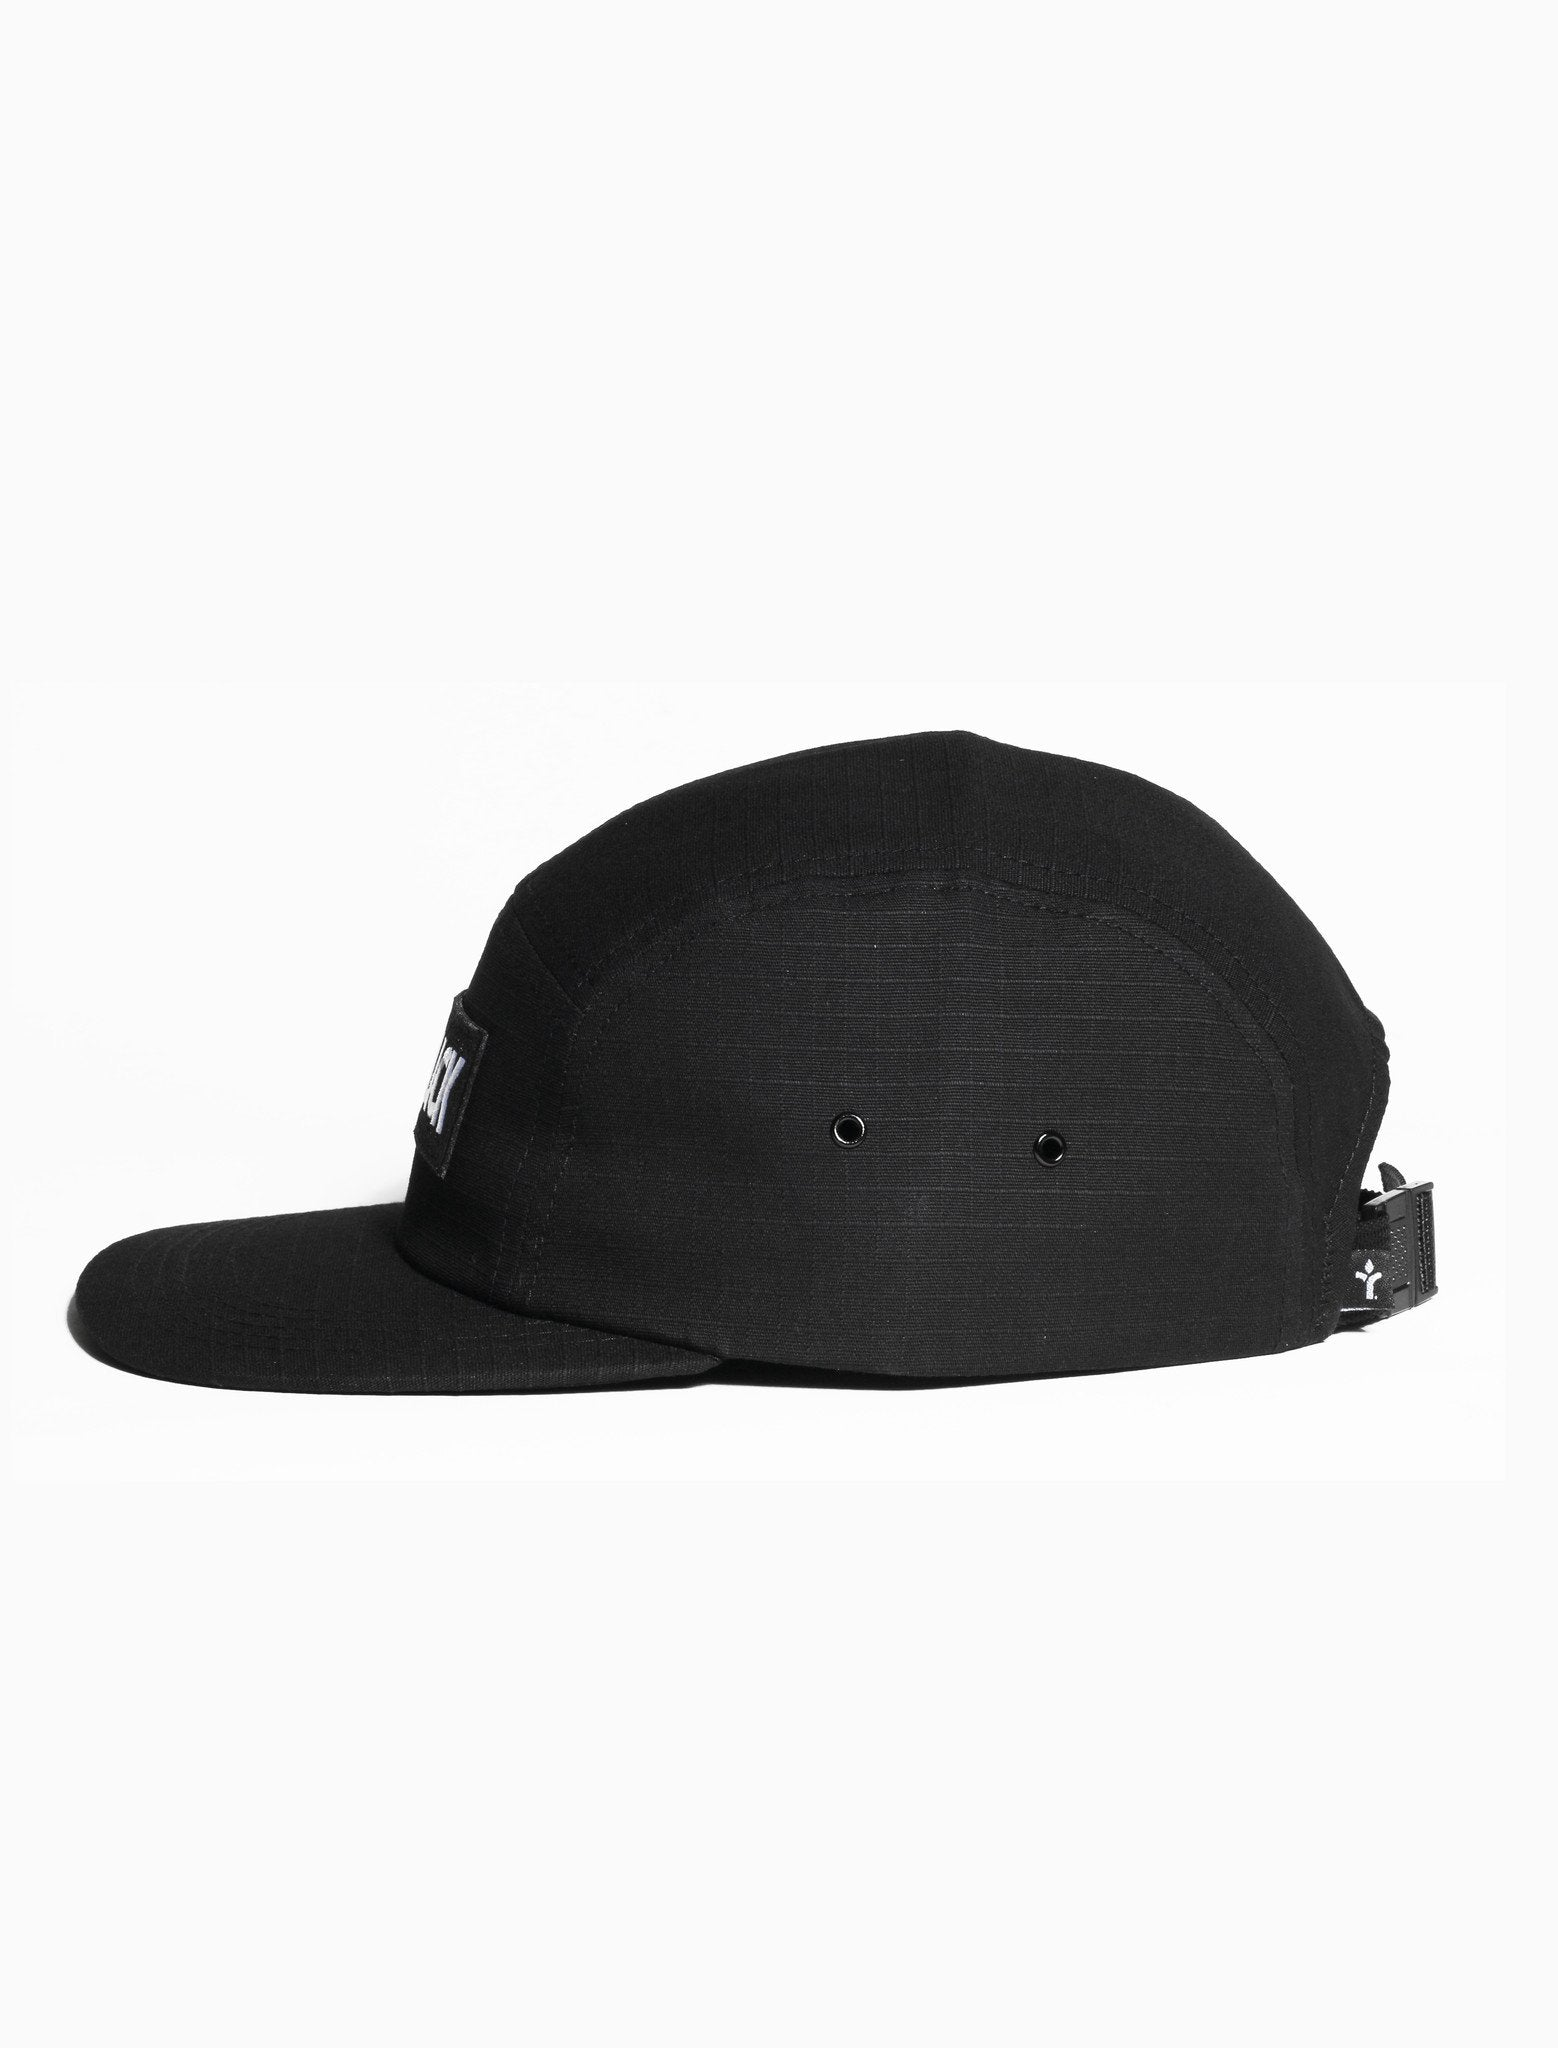 Acrylick - 5 Panel Camper - Five Panel Hat